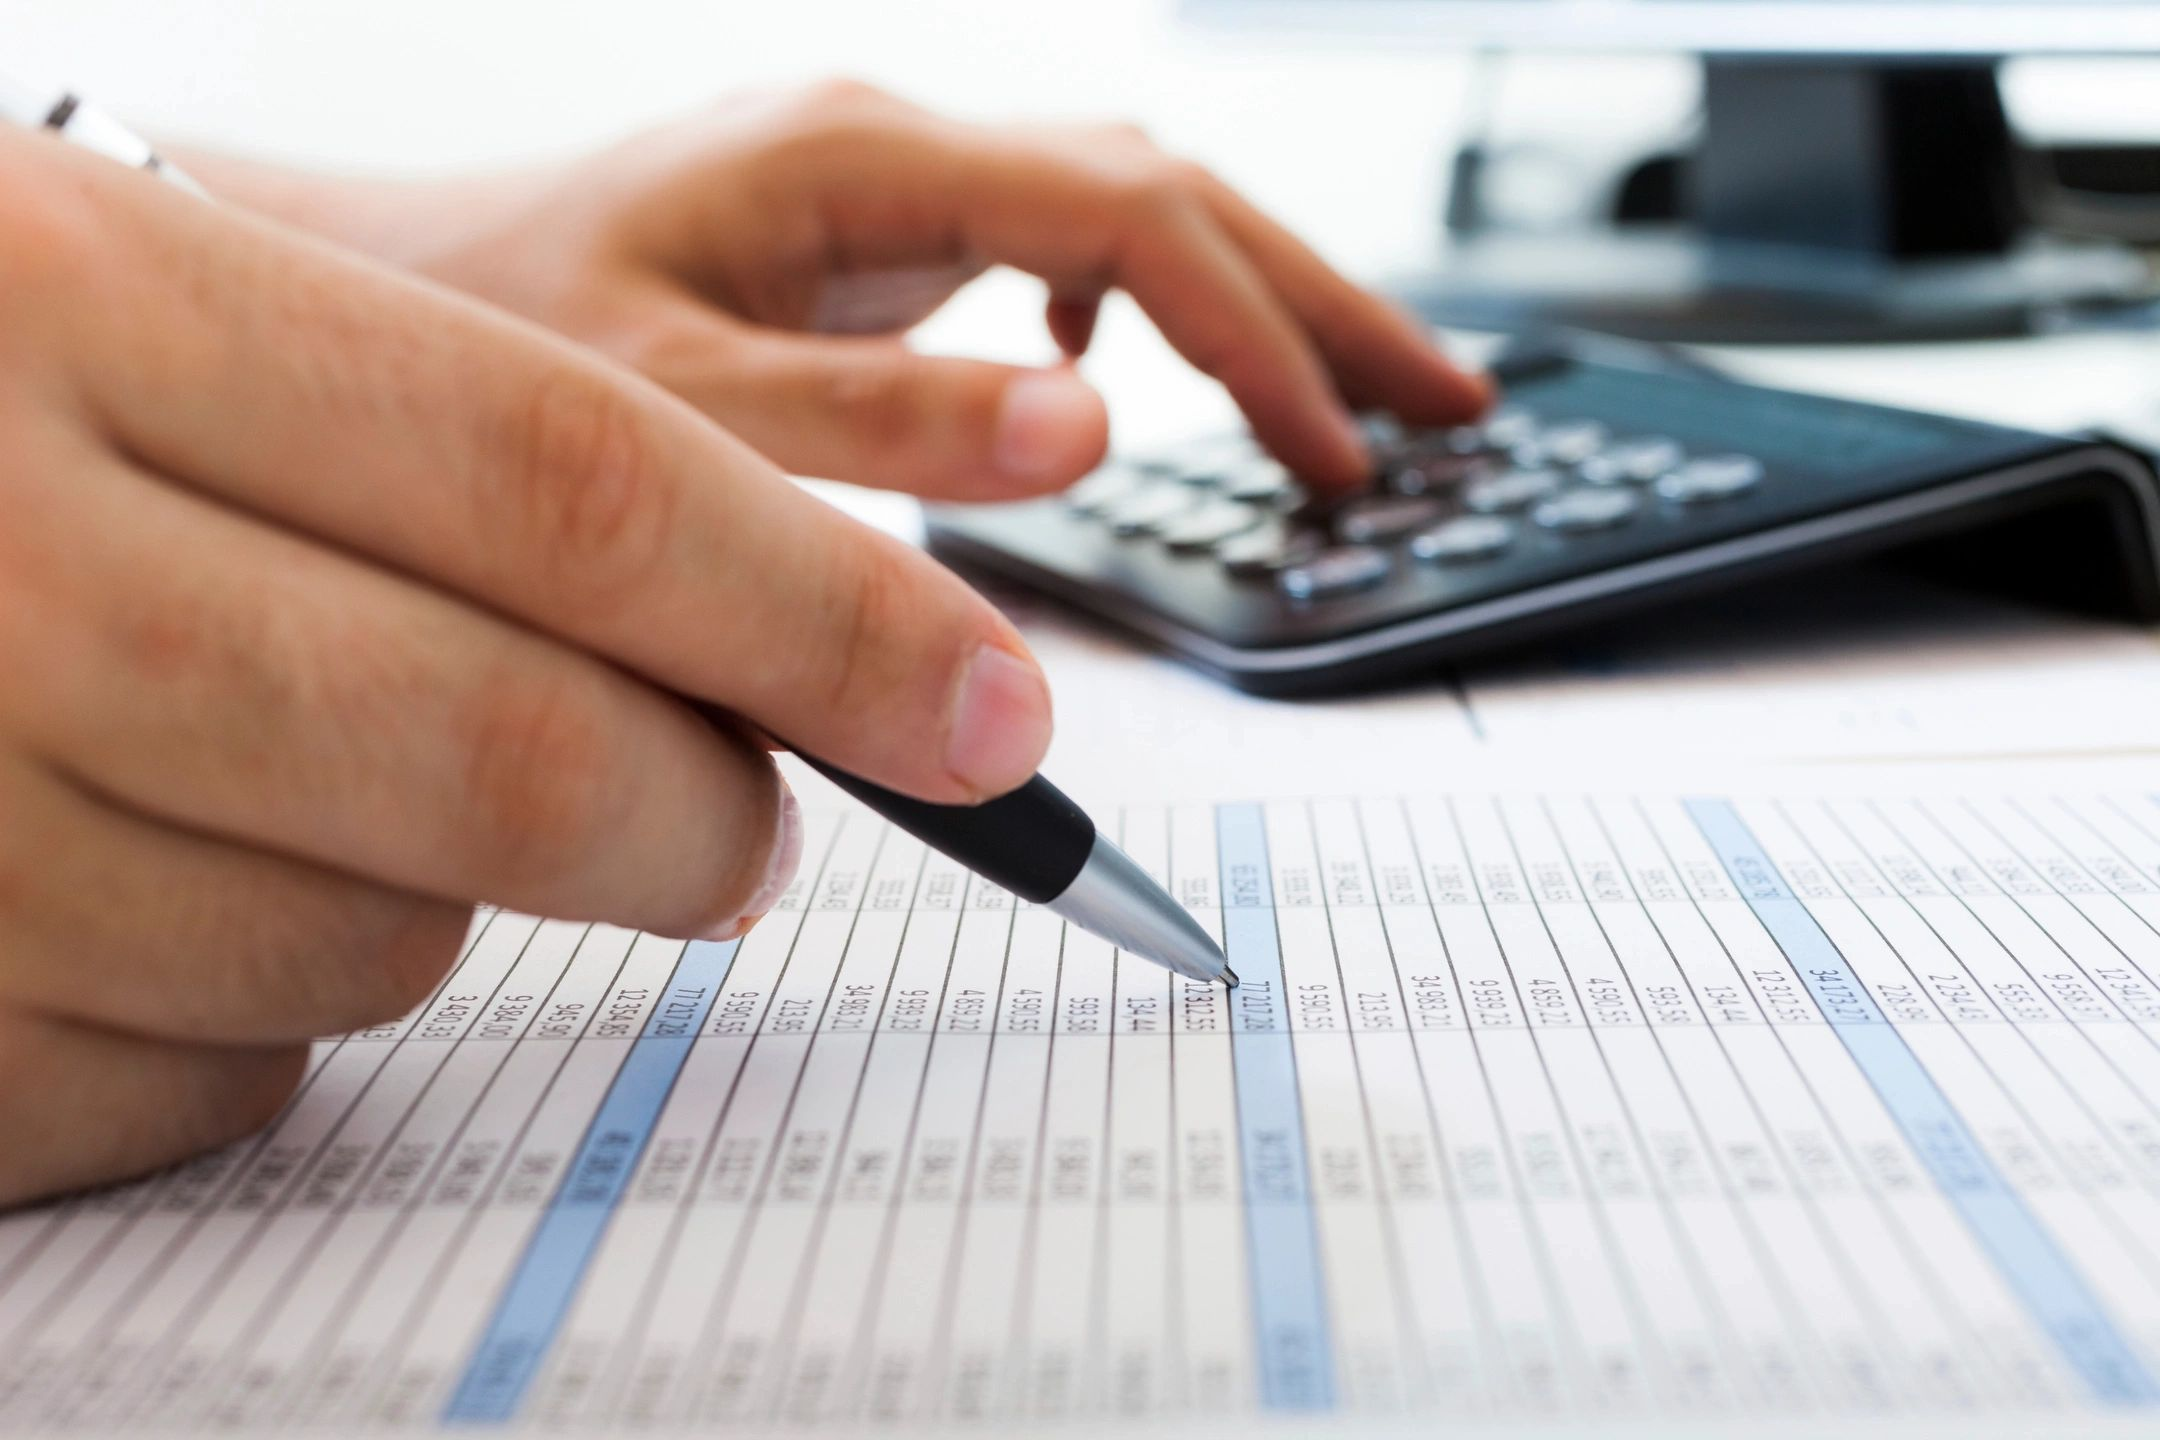 PCOR Fee, Form 720 Filing Due July 31